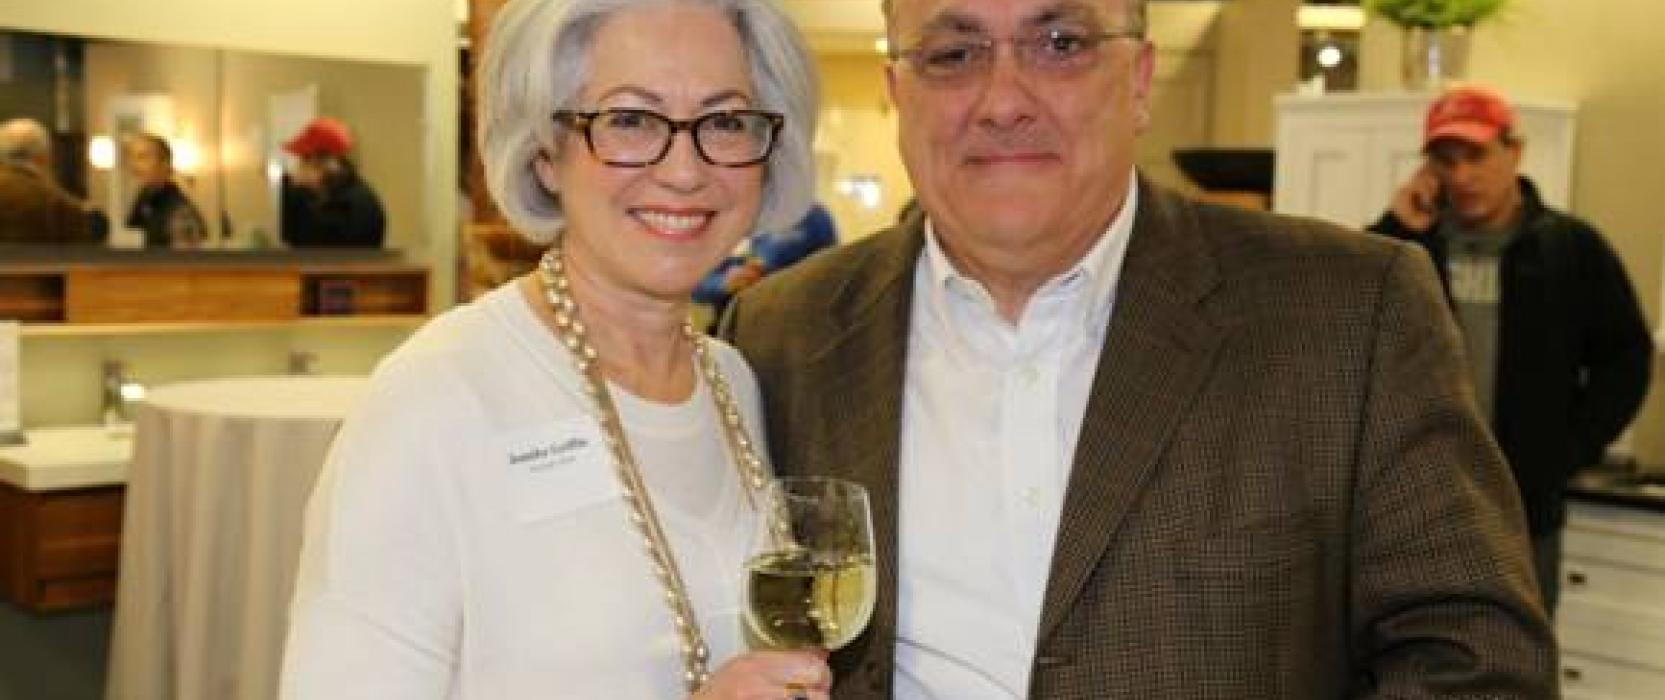 Designer Bath Holds 4th Annual 'What's on Tap' Event